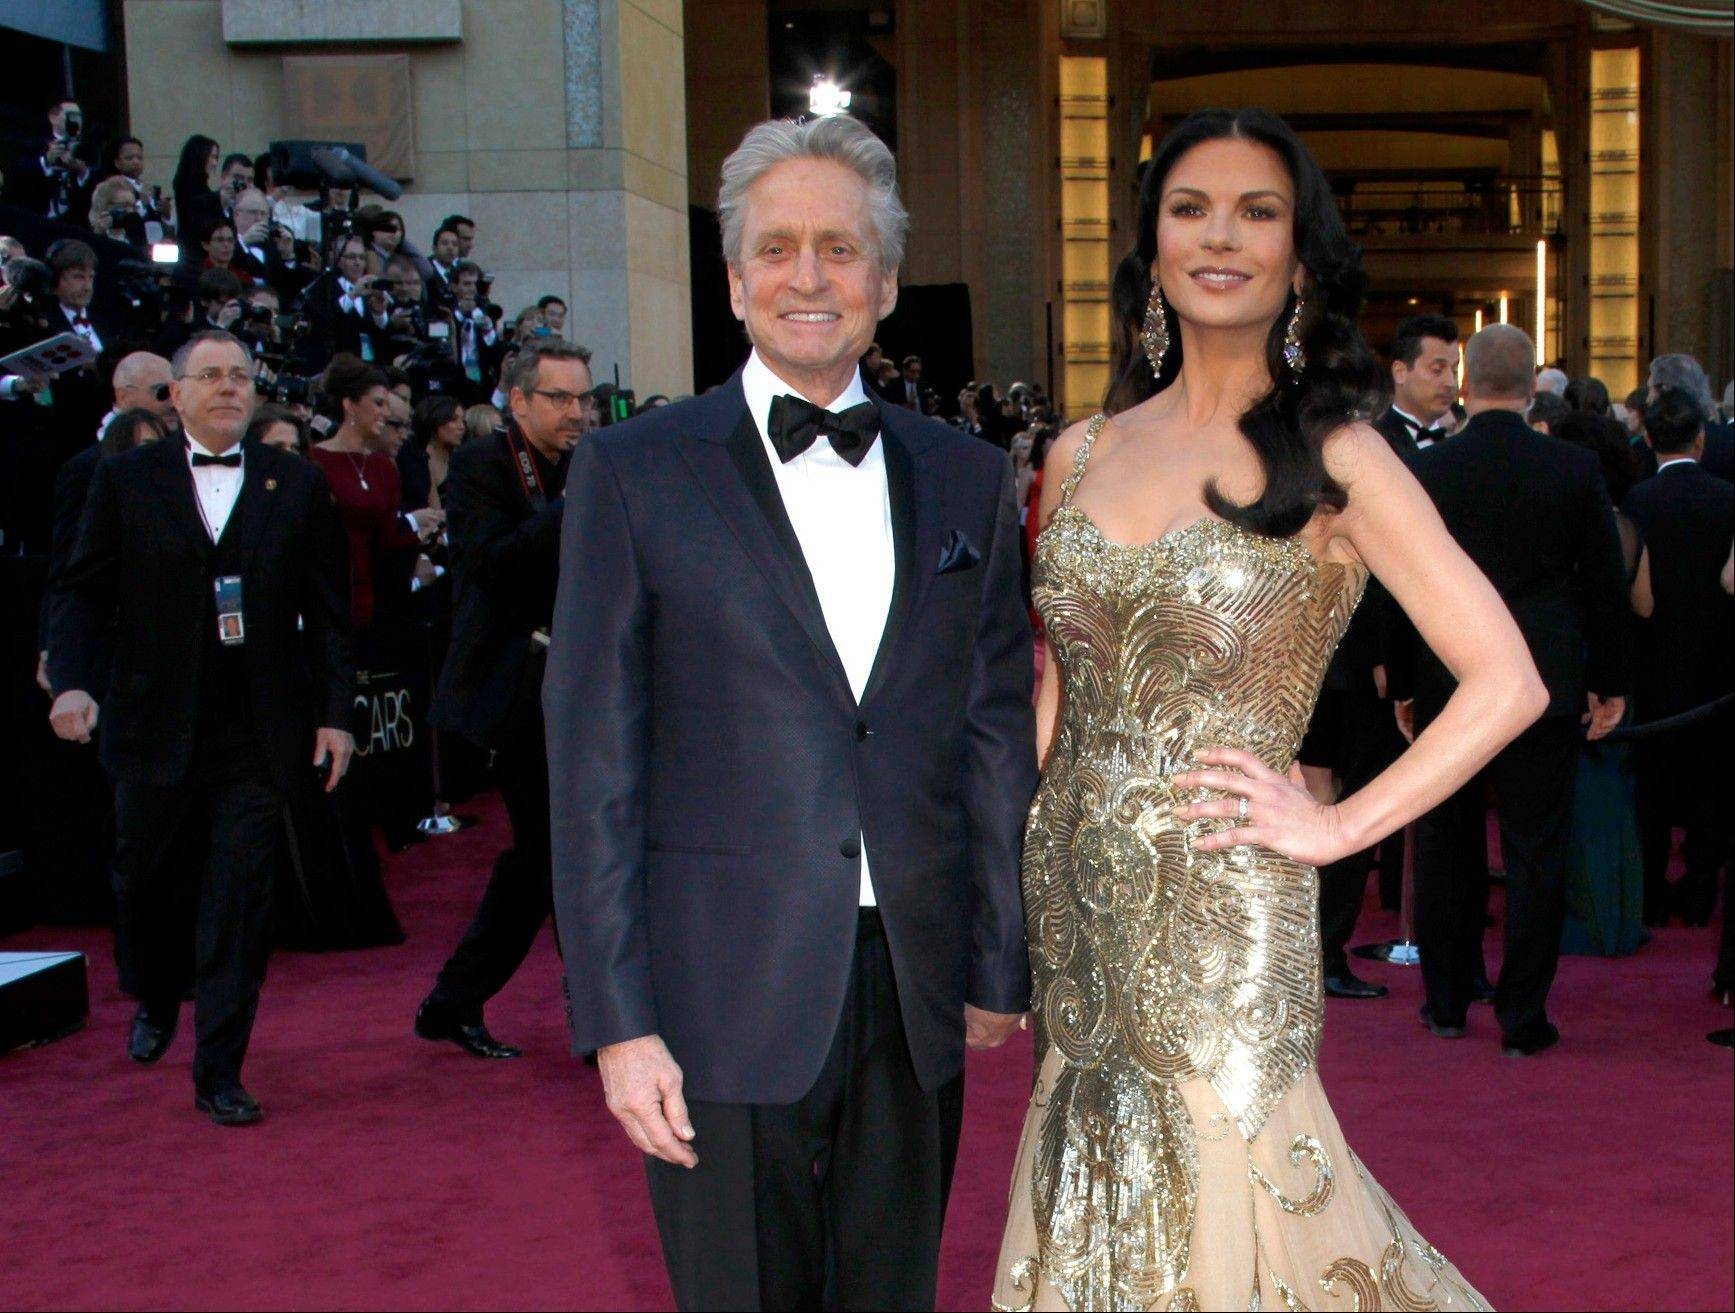 According to her publicist, Catherine Zeta-Jones has proactively checked into a health care facility.